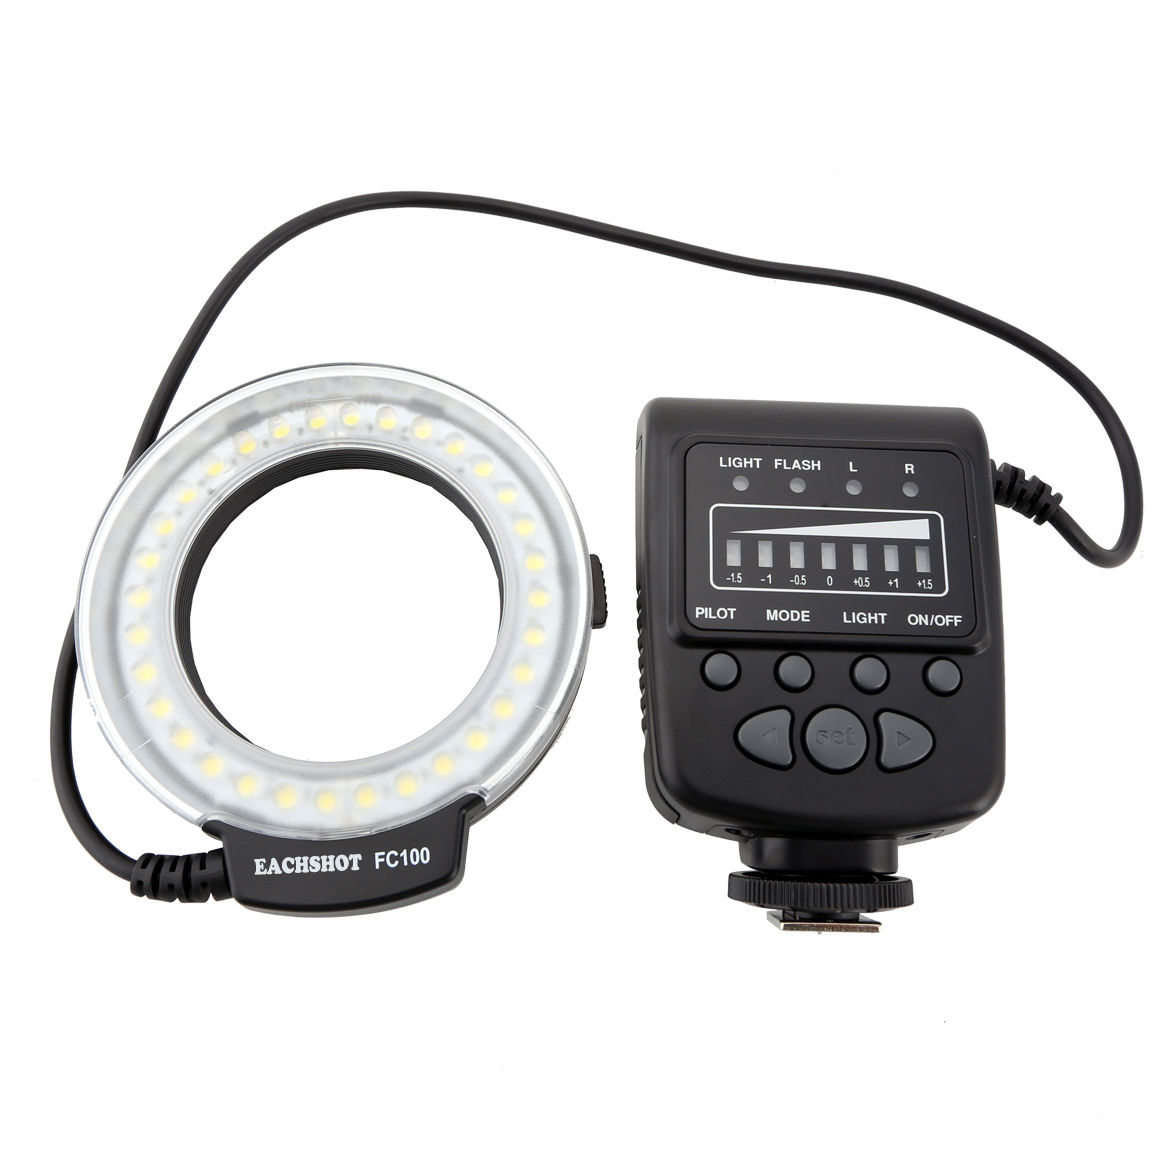 Meike FC 100 FC100 Macro Ring Flash Light MK FC 100 for Canon for EOS 650D